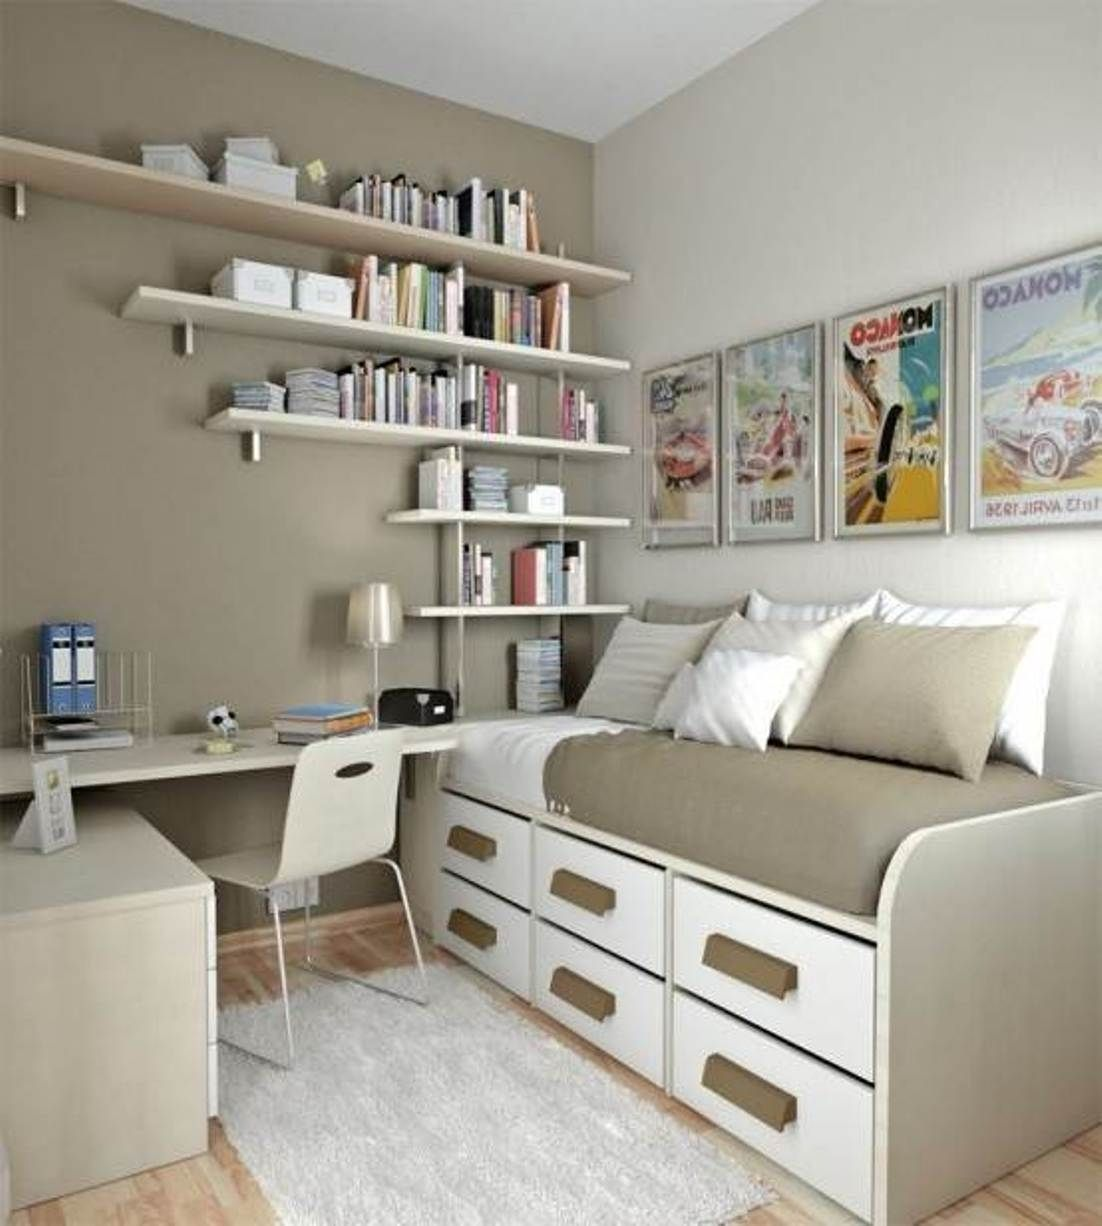 Low cost small bedroom storage ideas - Image Result For Low Cost Small Bedroom Storage Ideas